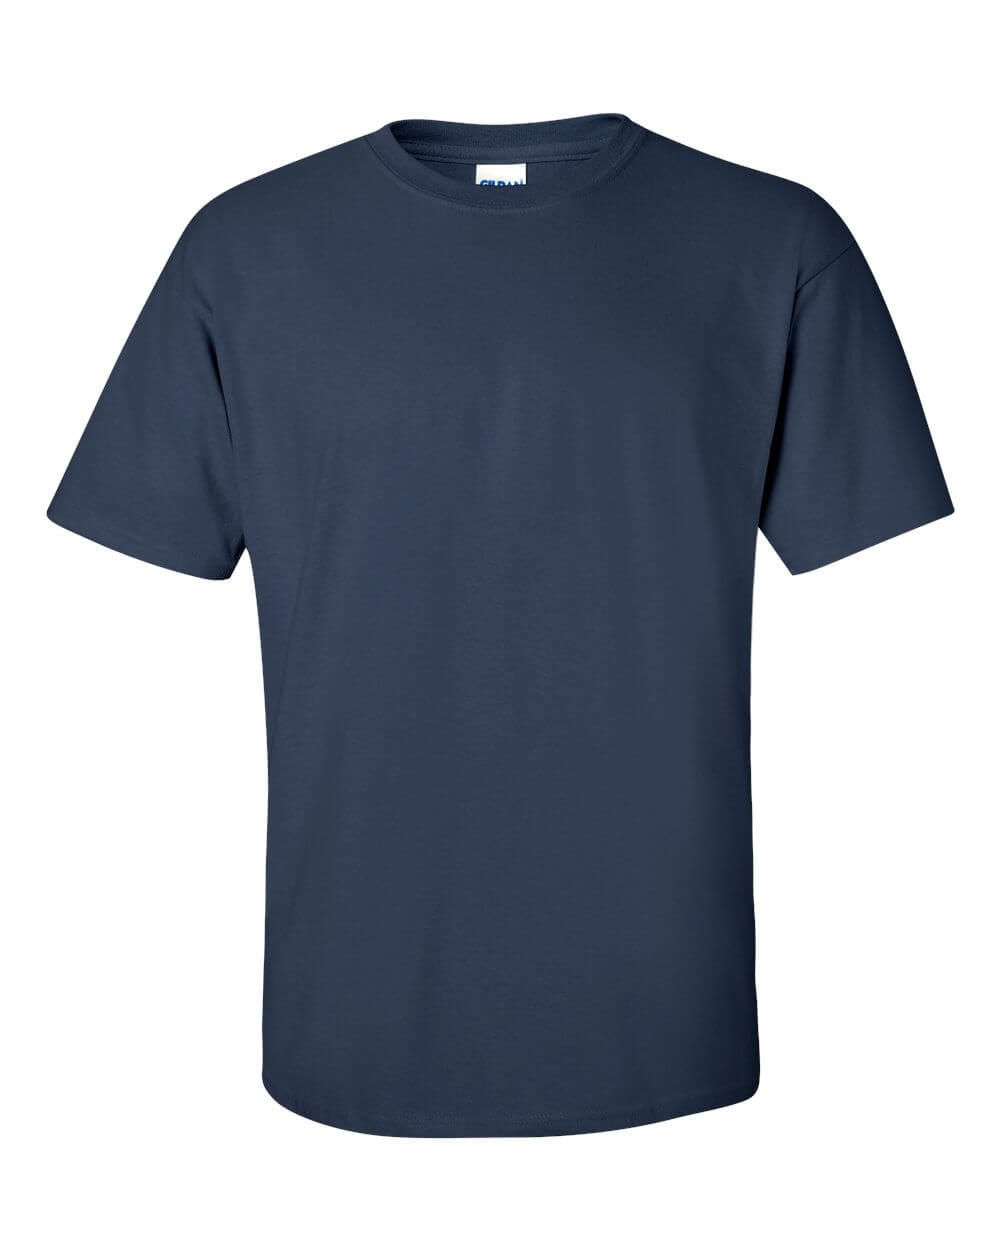 Gildan_2000_Navy Blue Custom T Shirts